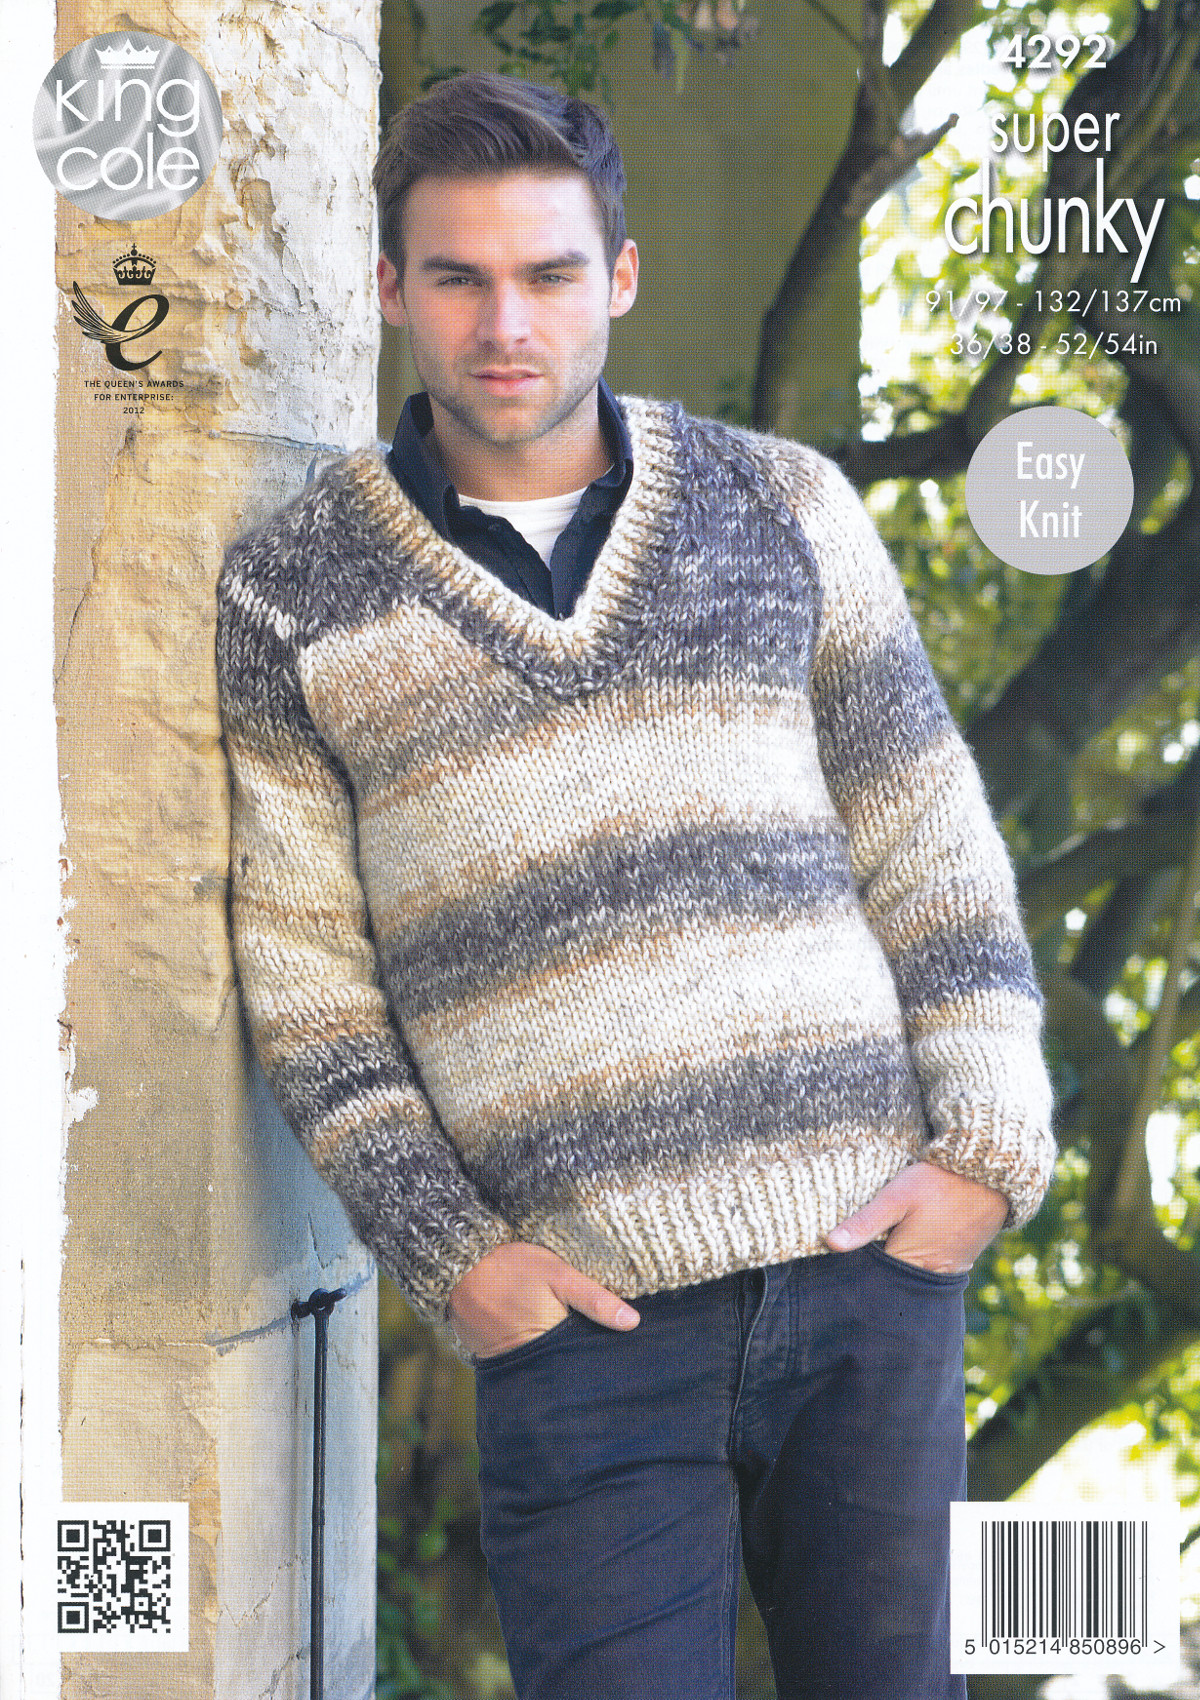 King Cole Mens Super Chunky Knitting Pattern V Neck Sweater & Cardigan 42...